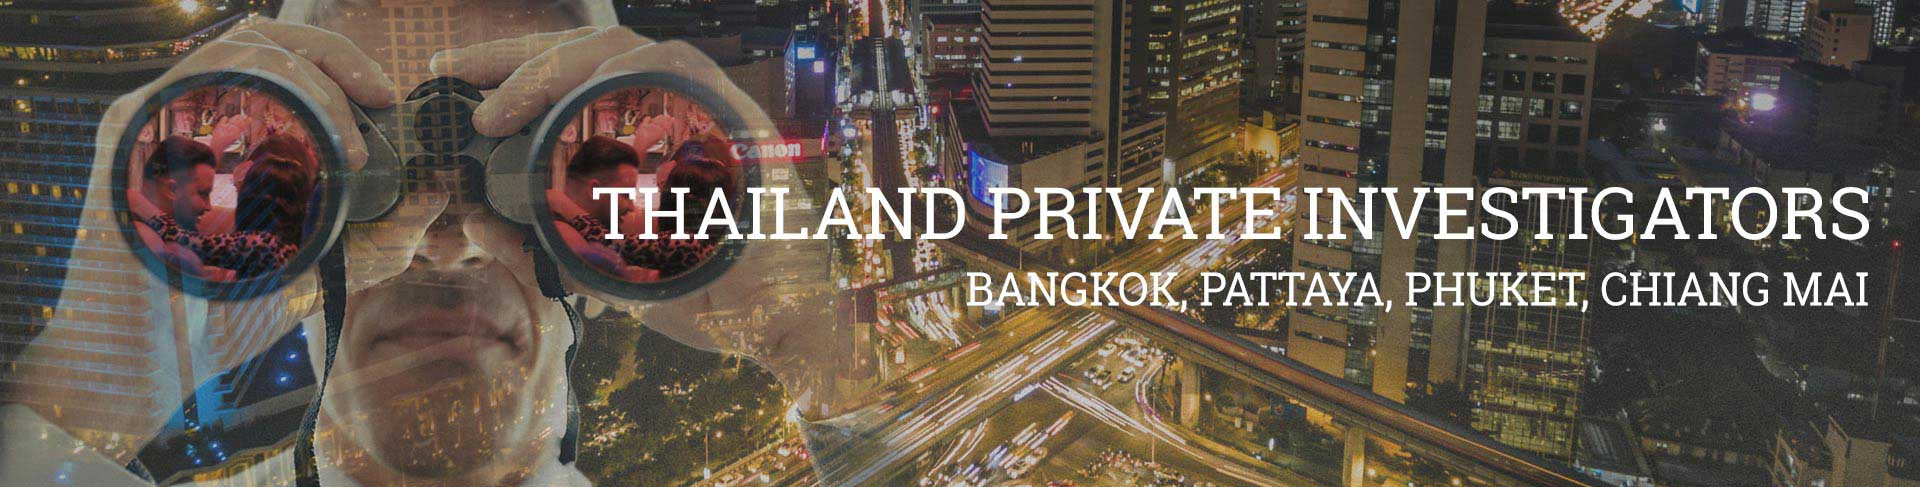 Thailand Private Investigator